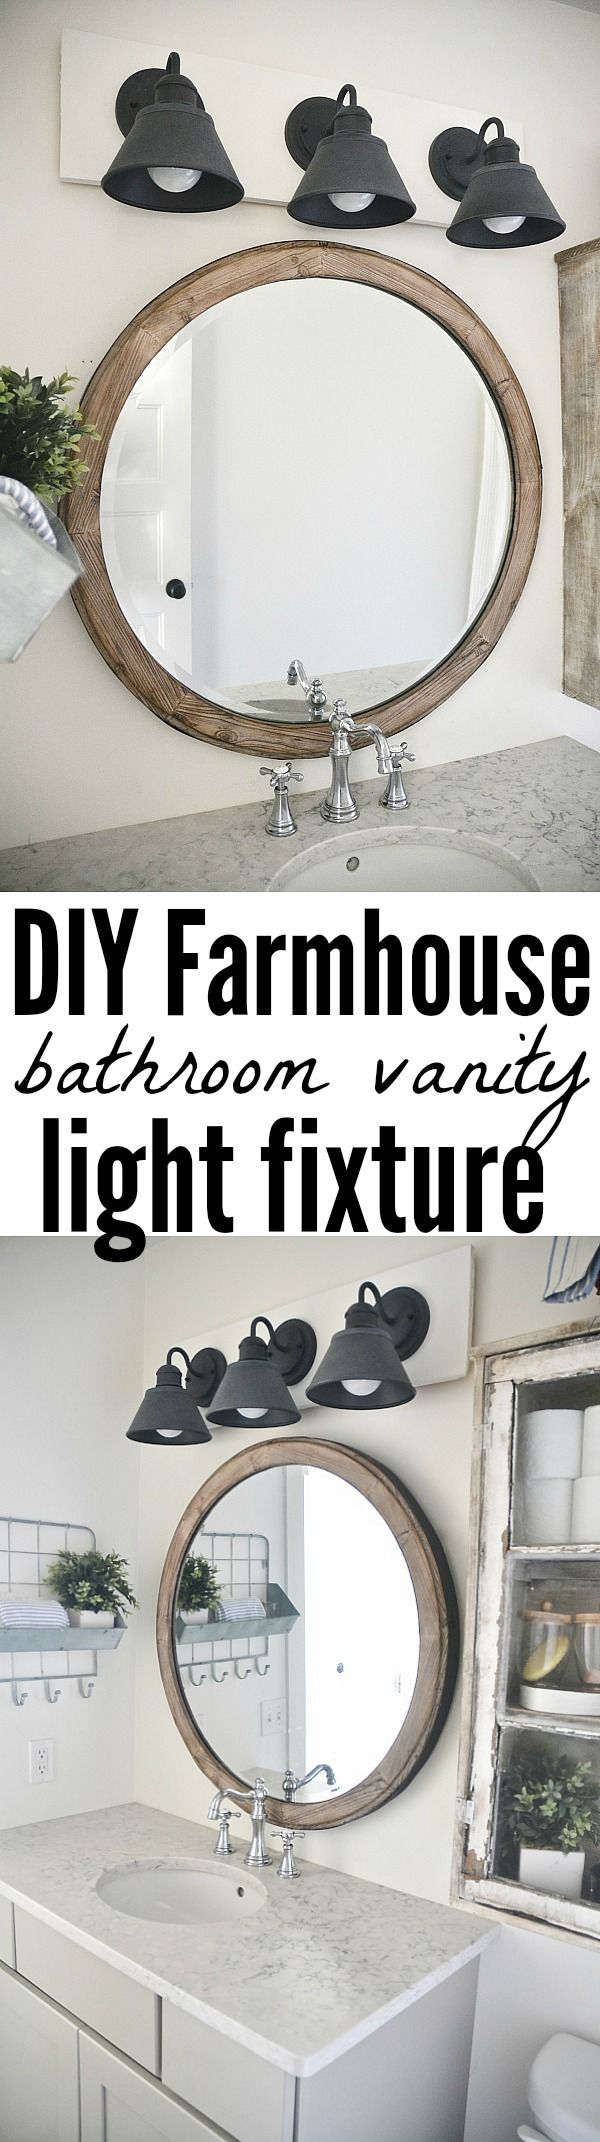 726 best DIY...lighting images on Pinterest | Chandeliers, Light ...